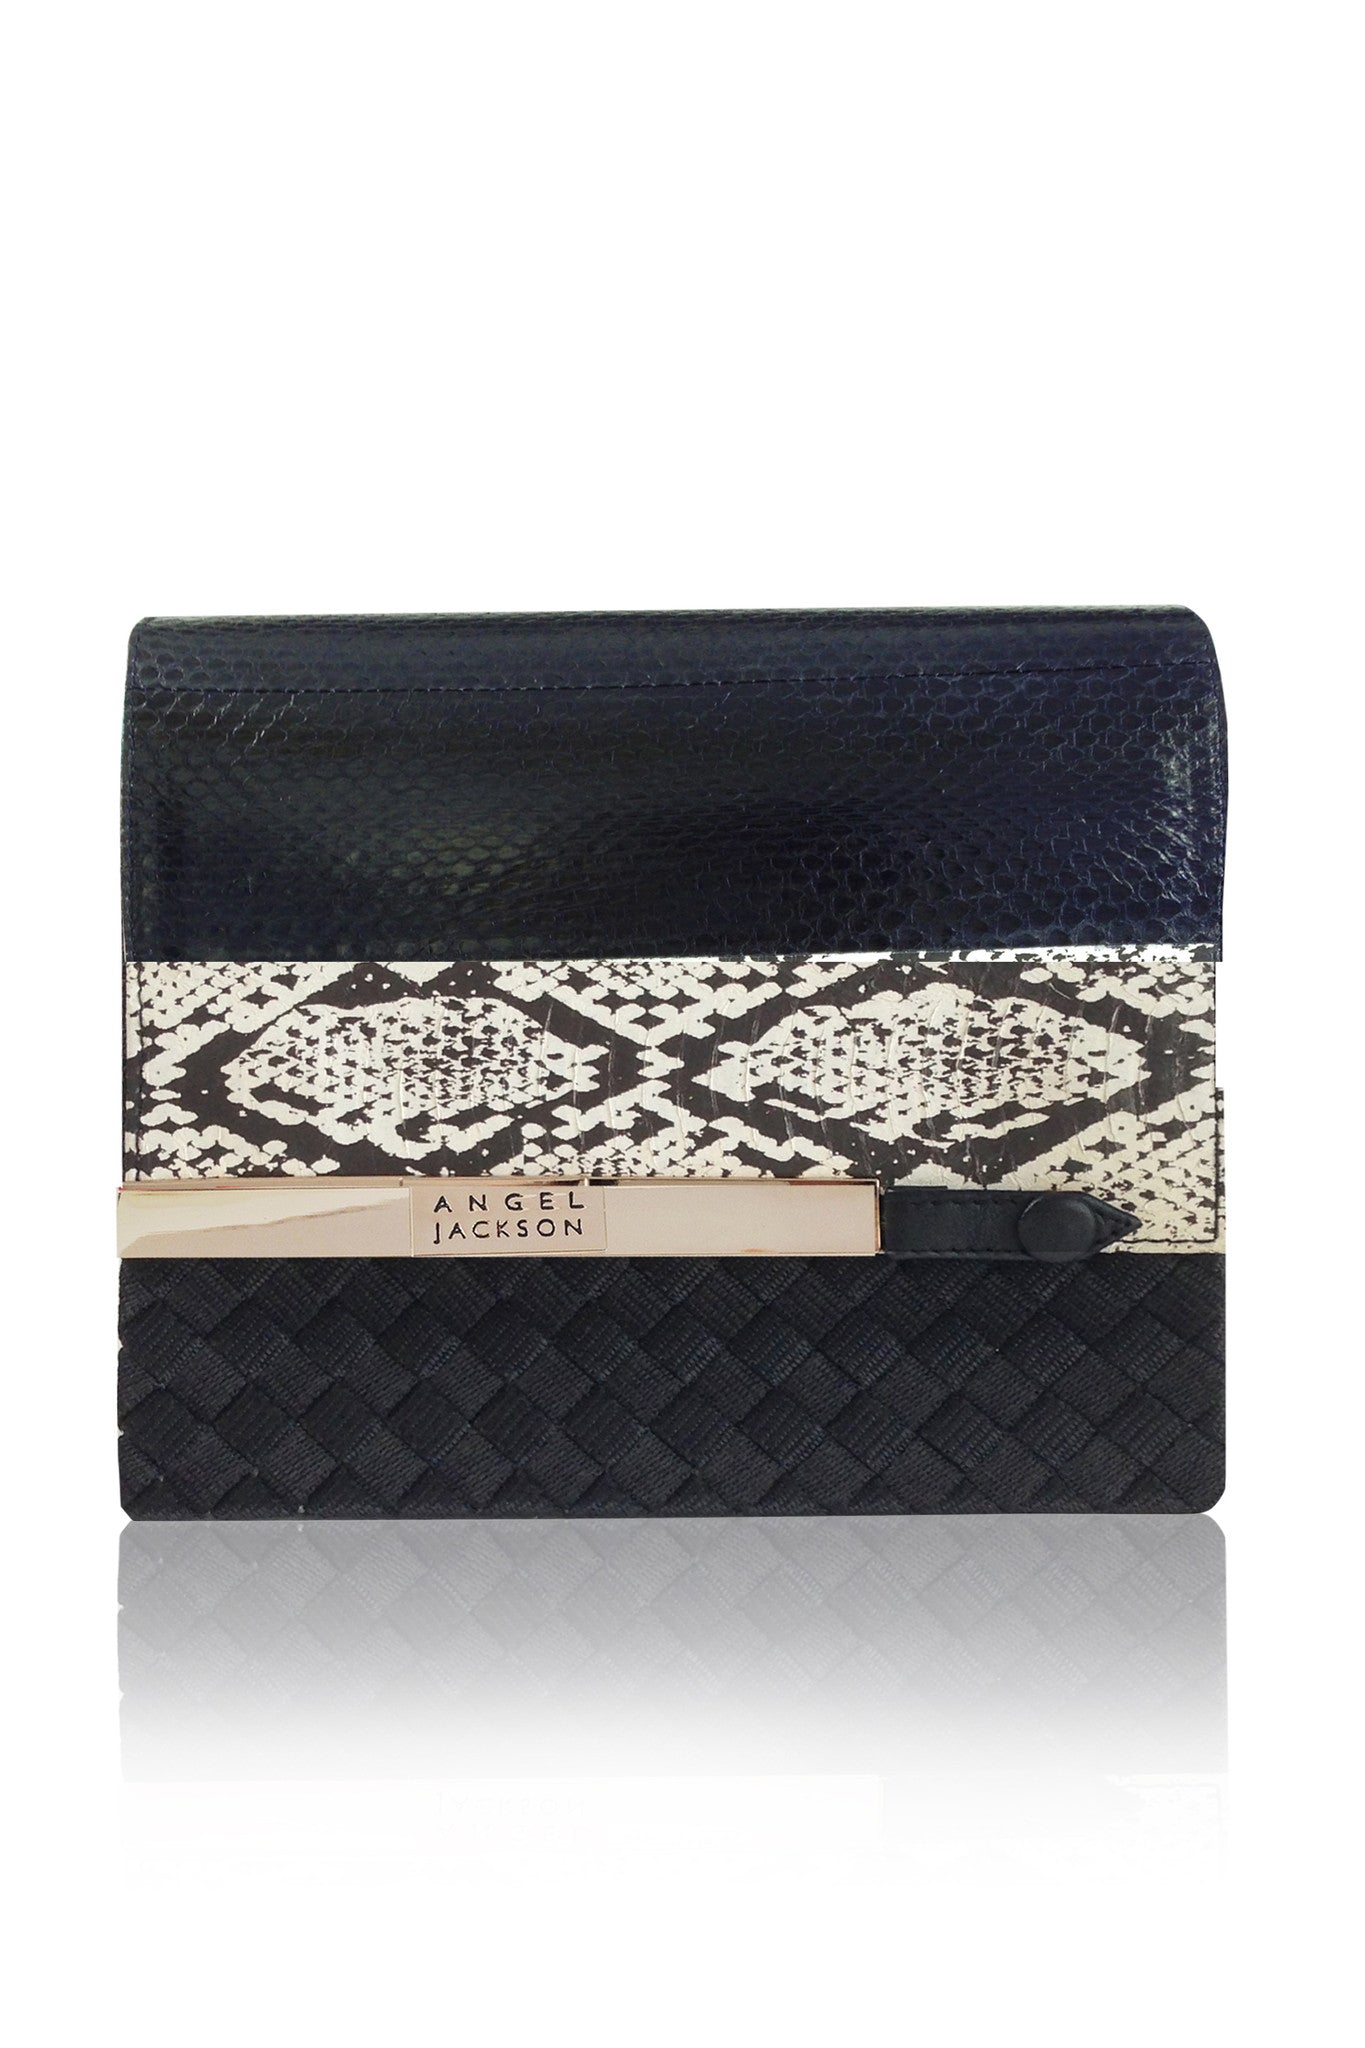 ANGEL JACKSON BLACK SNAKESKIN  SHOULDER BAG - contemporary sustainable luxury HANDBAGS